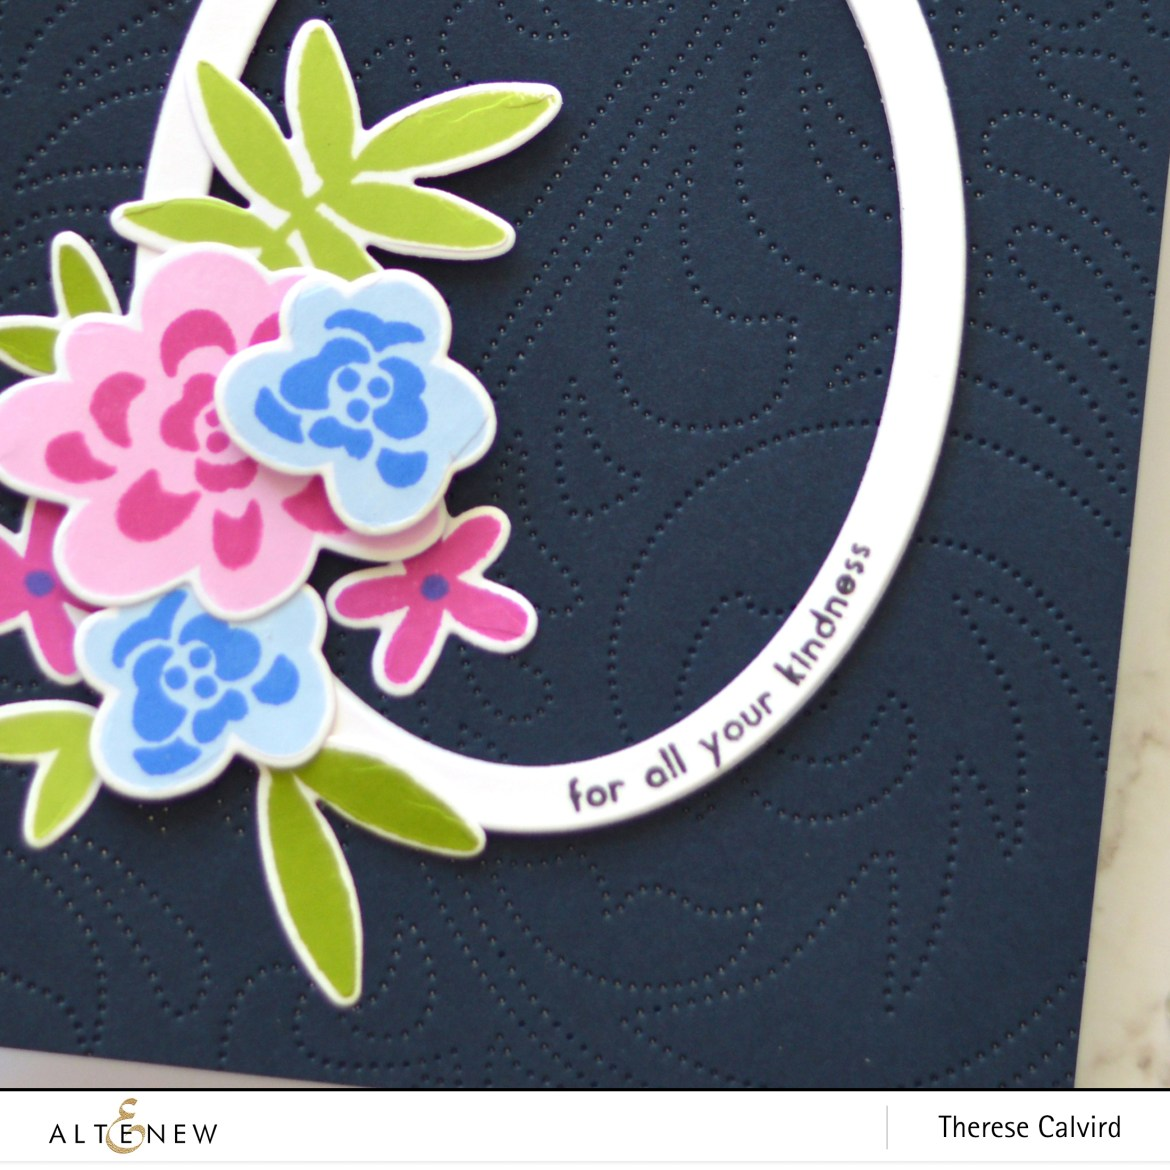 Altenew - Dotted Swirls Debossing Cover Die - Bold Bunch - Take 2 with Therese (card video) 1 copy